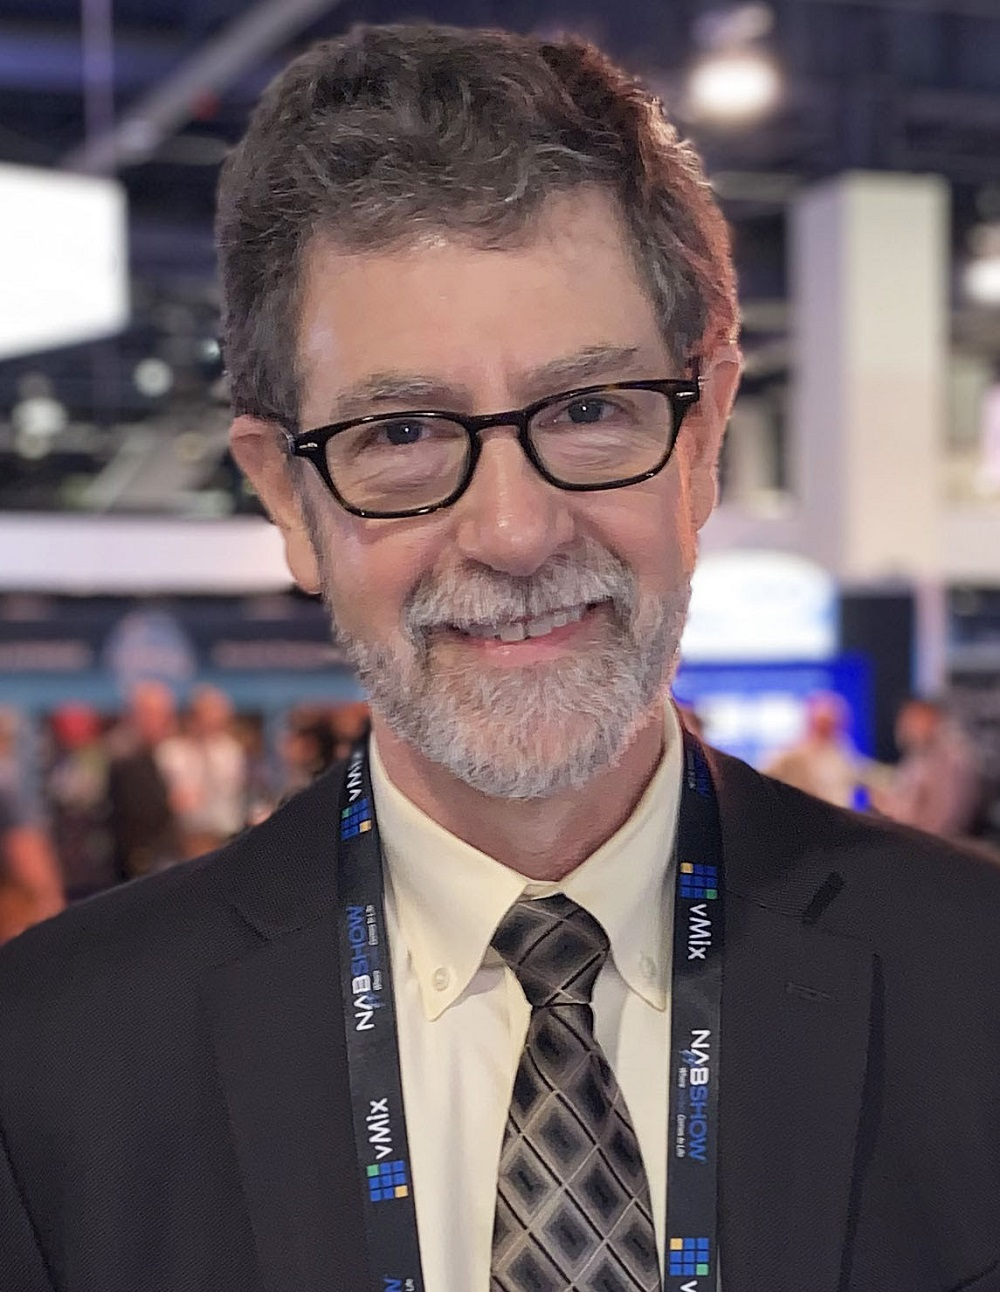 Dave Van Hoy, President of Advanced Systems Group